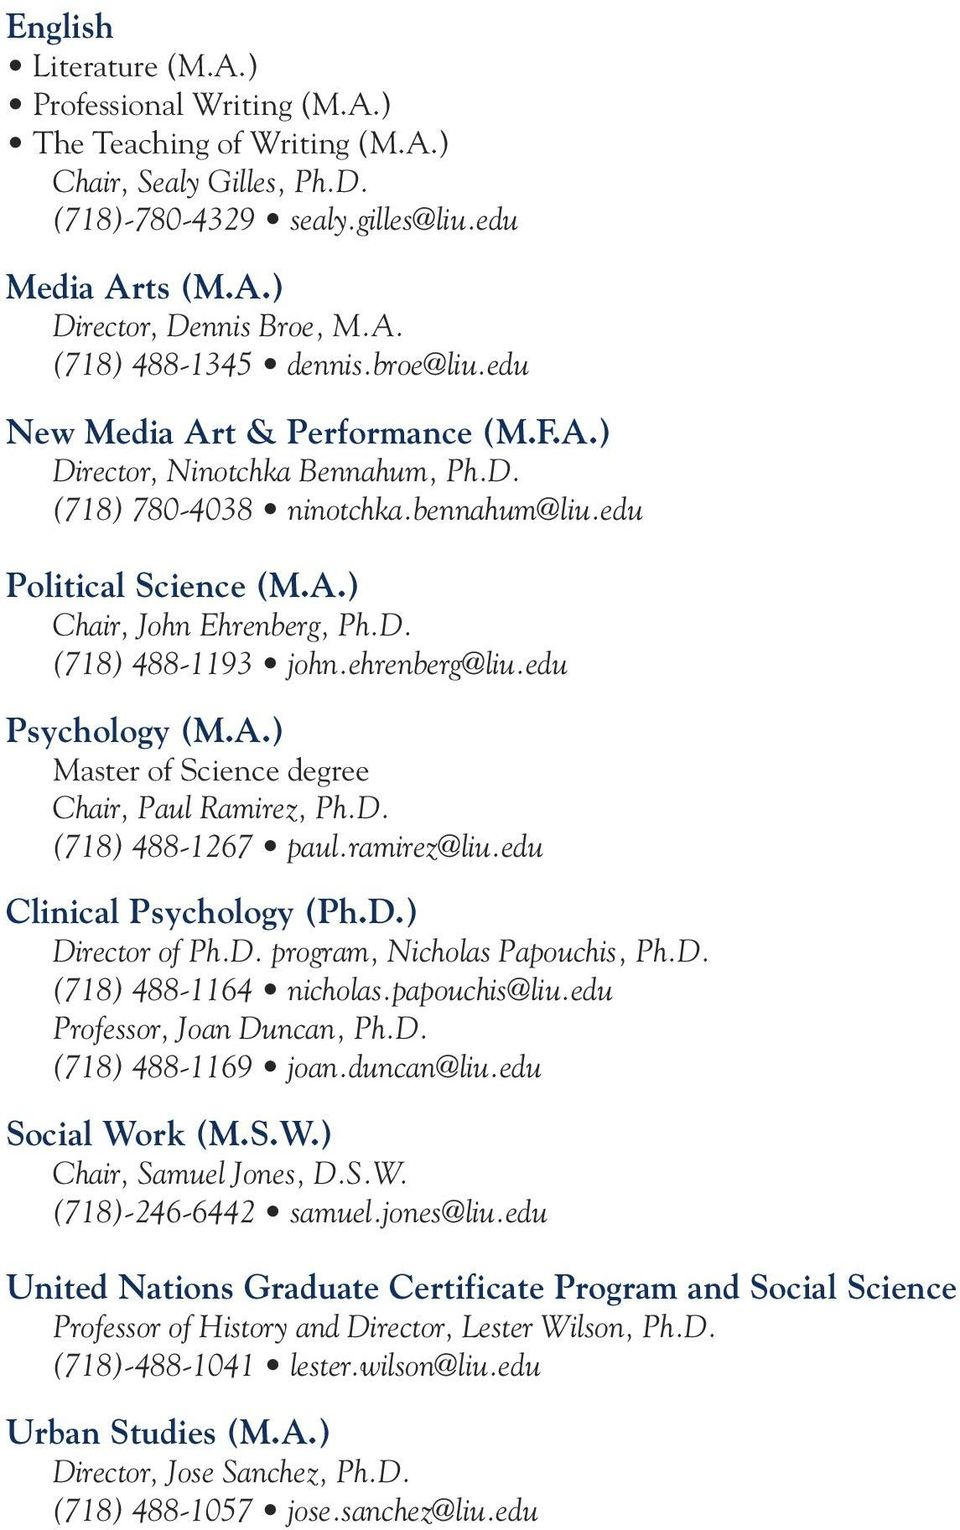 ehrenberg@liu.edu Psychology (M.A.) Master of Science degree Chair, Paul Ramirez, Ph.D. (718) 488-1267 paul.ramirez@liu.edu Clinical Psychology (Ph.D.) Director of Ph.D. program, Nicholas Papouchis, Ph.